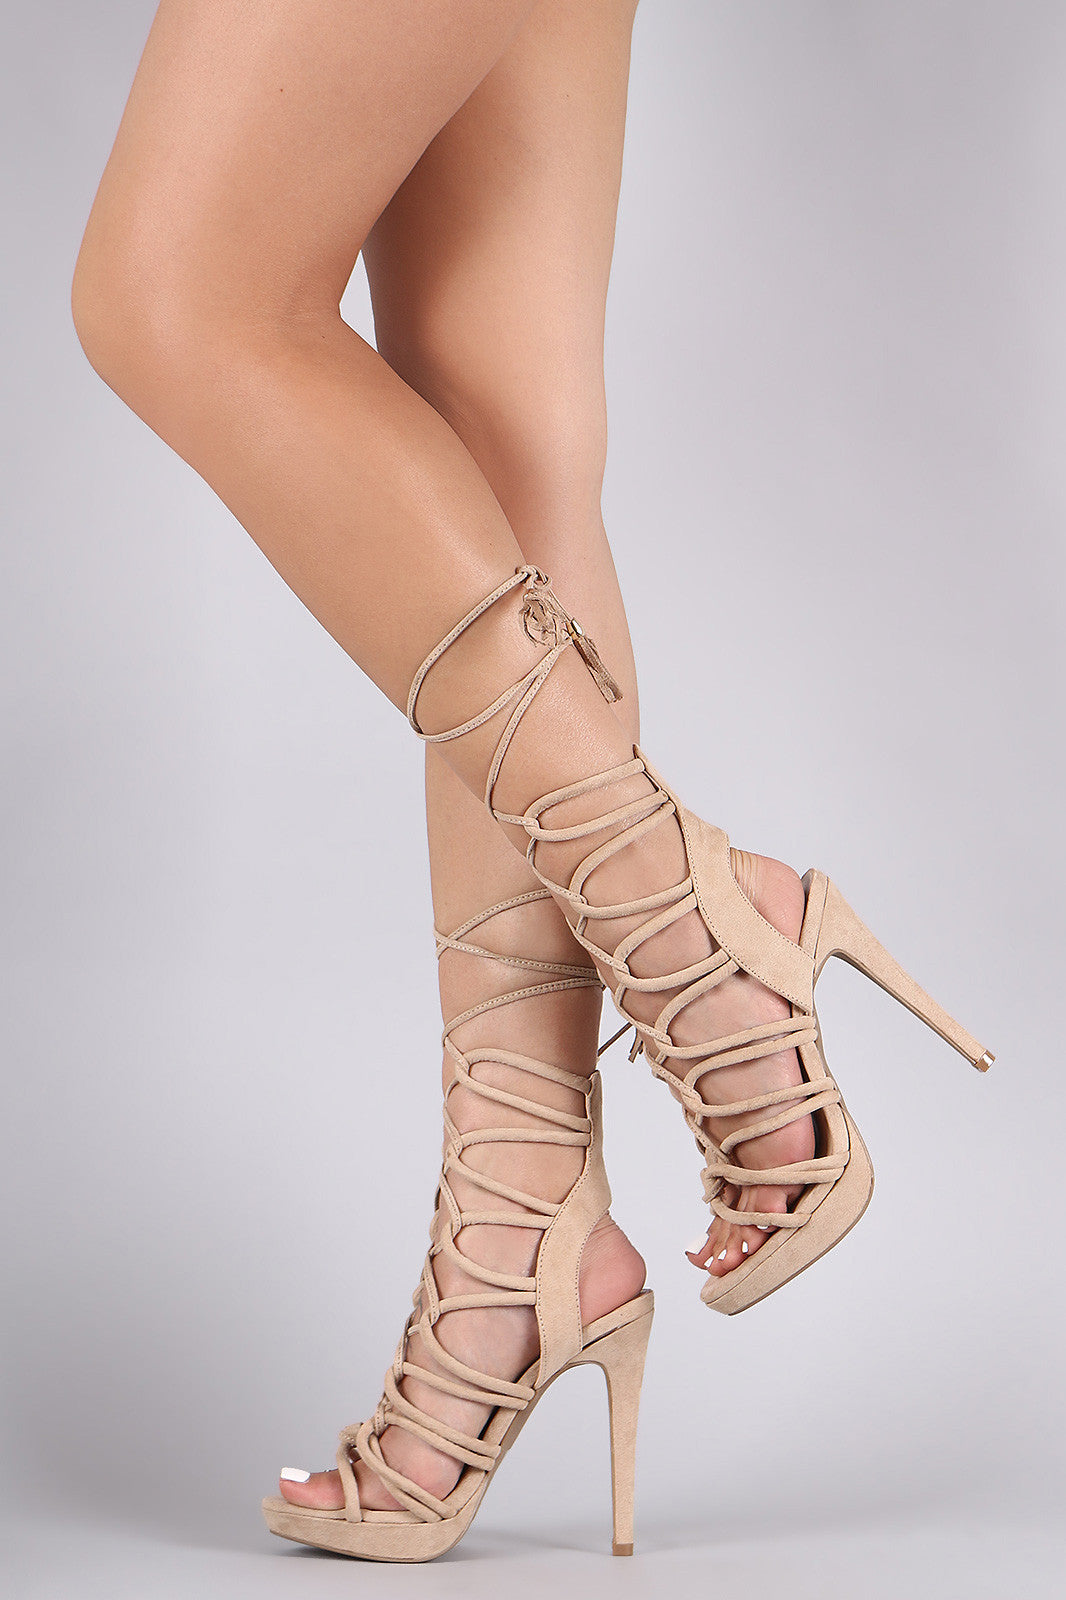 Wild Diva Lounge Suede Strappy Loop Lace-Up Platform Heel - Thick 'N' Curvy Shop - 8